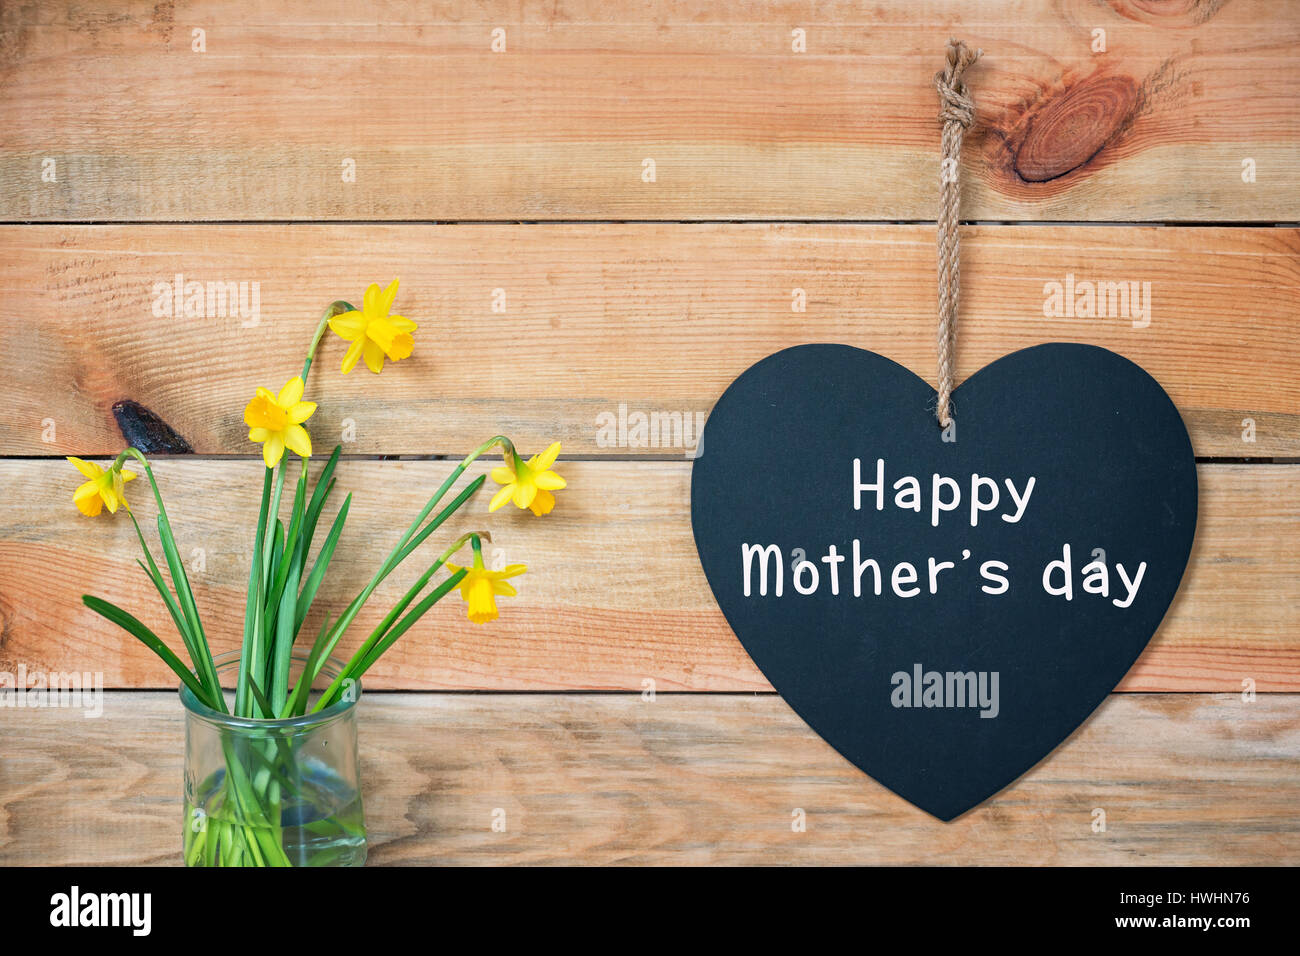 Happy mothers day card, wood planks with daffodils and a blackboard in the shape of a  heart - Stock Image